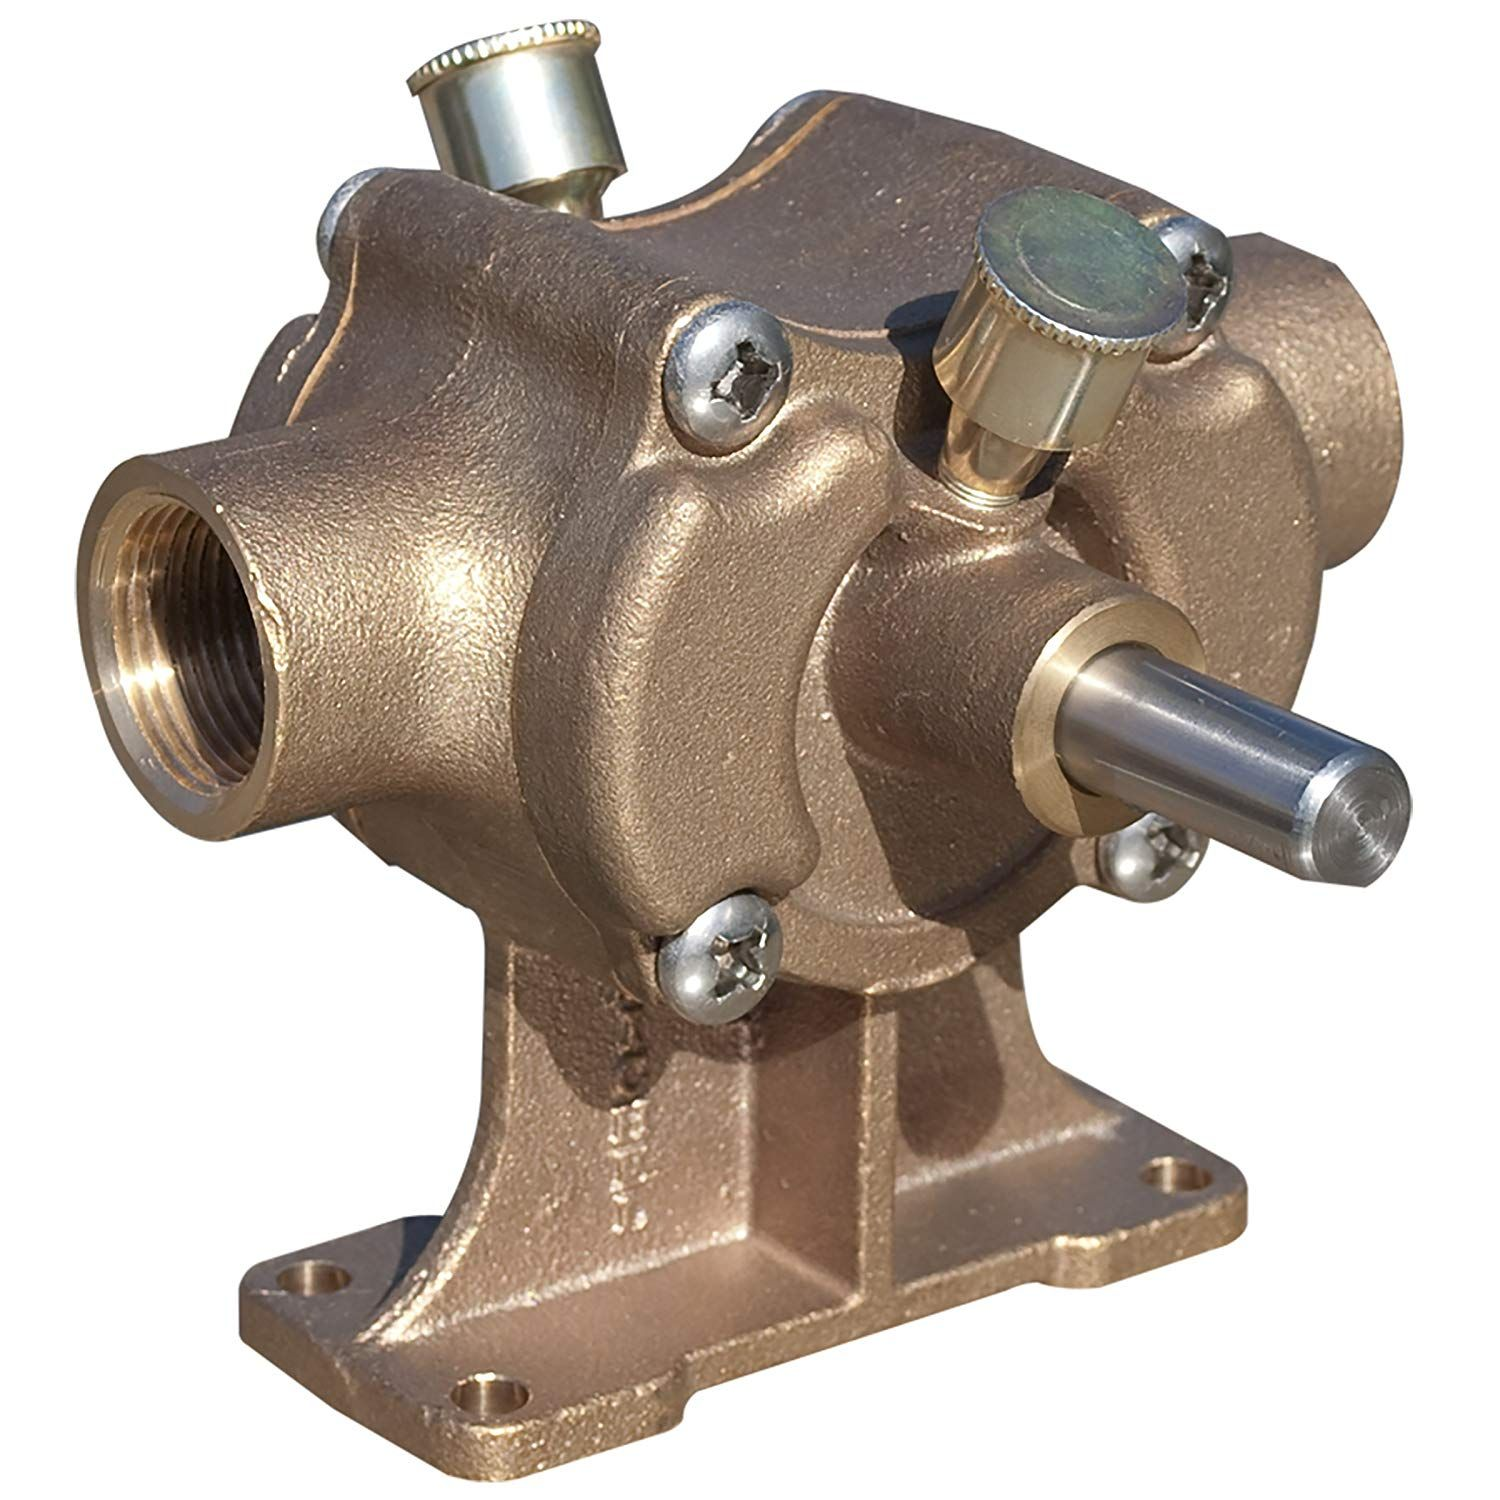 Superior Pump Bp21x 1 Inch Bronze Transfer Pump Read More At The Image Link This Is An Affiliate Link Pumps Plumbing Pumps Gear Pump